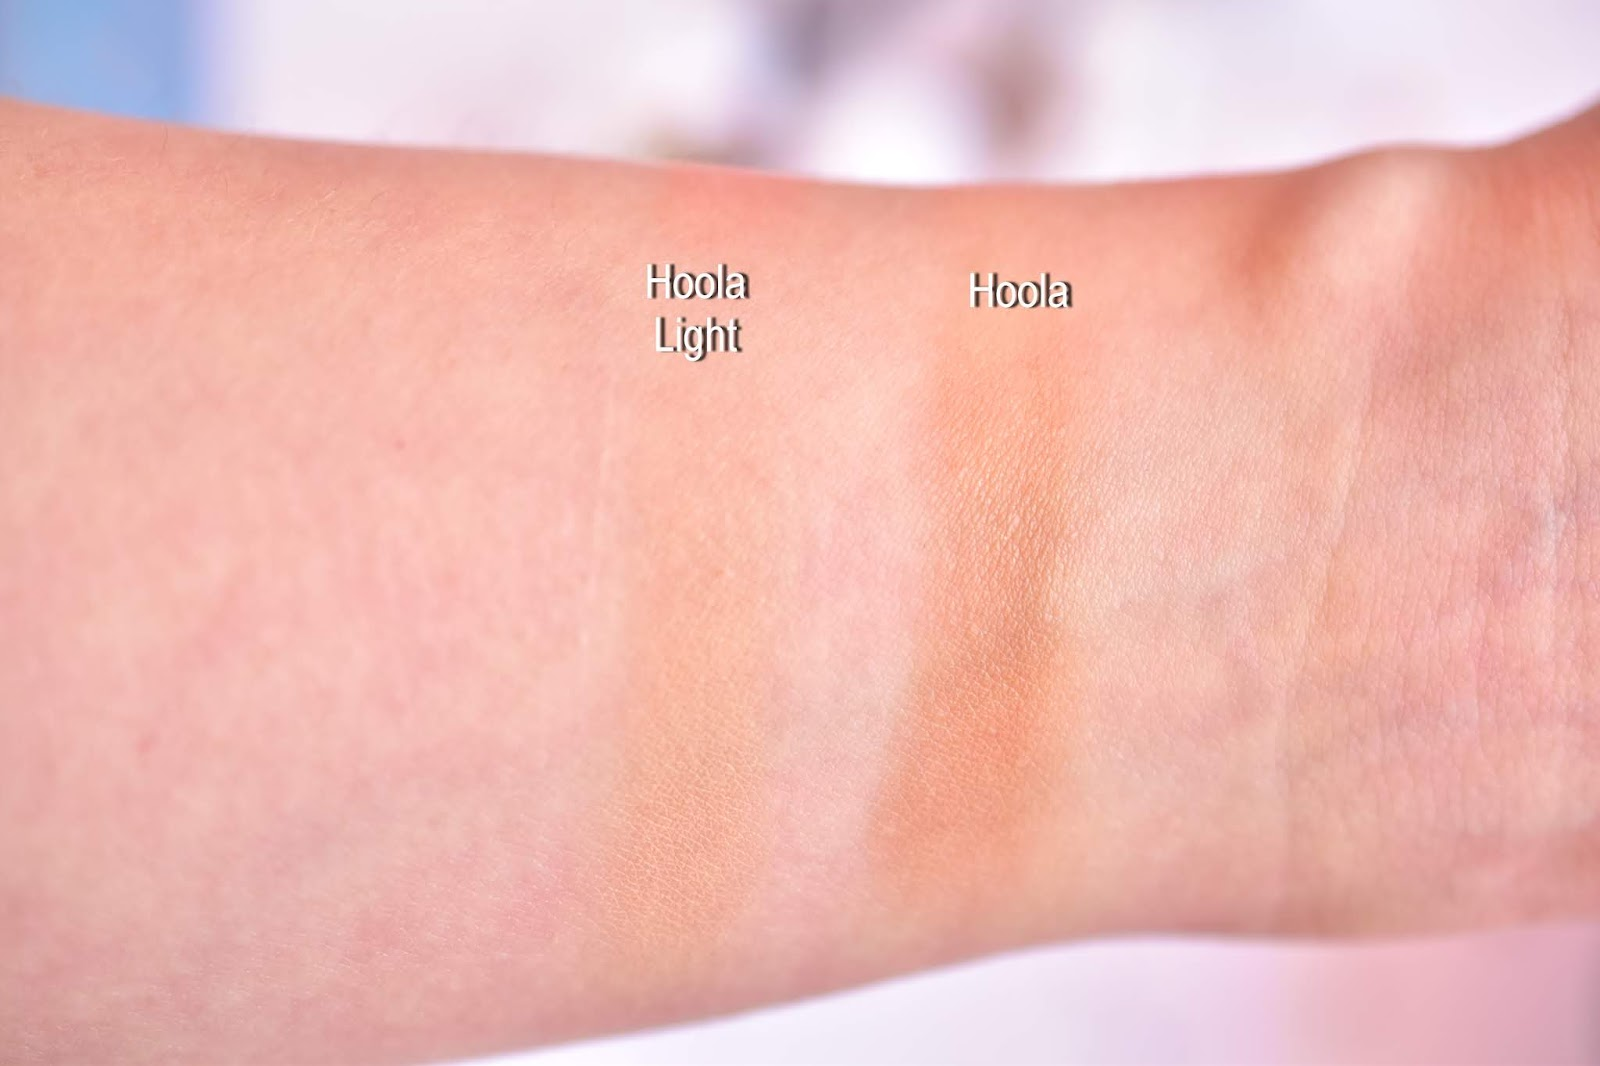 Benefit Hoola vs Hoola Light